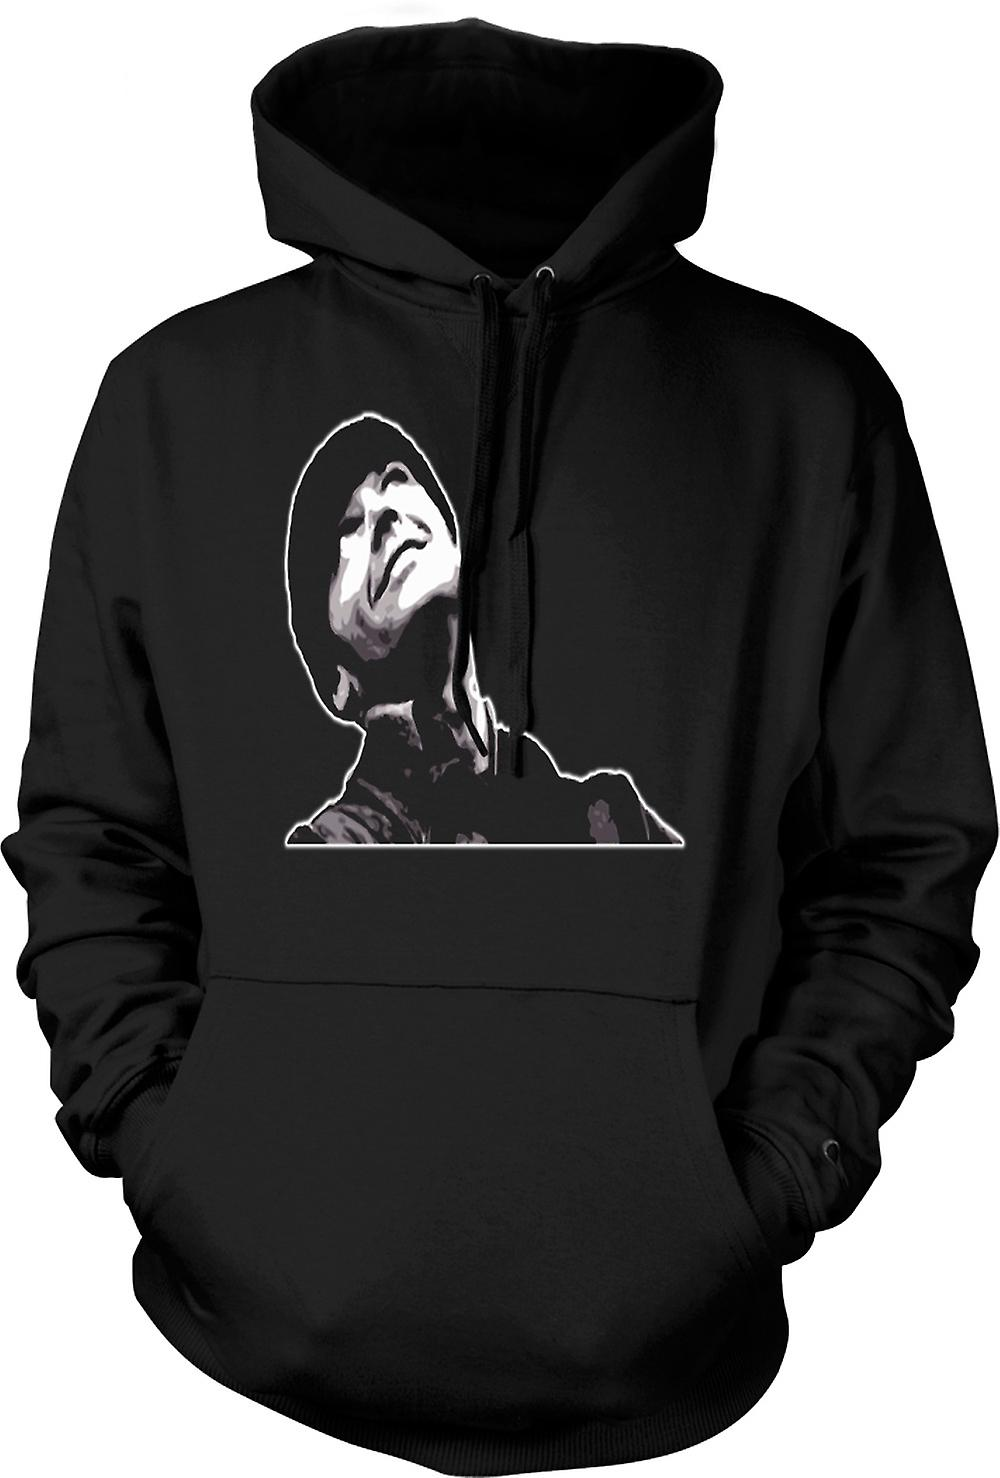 Kids Hoodie - One Flew Over Cuckoo's Nest - Jack Nicholson